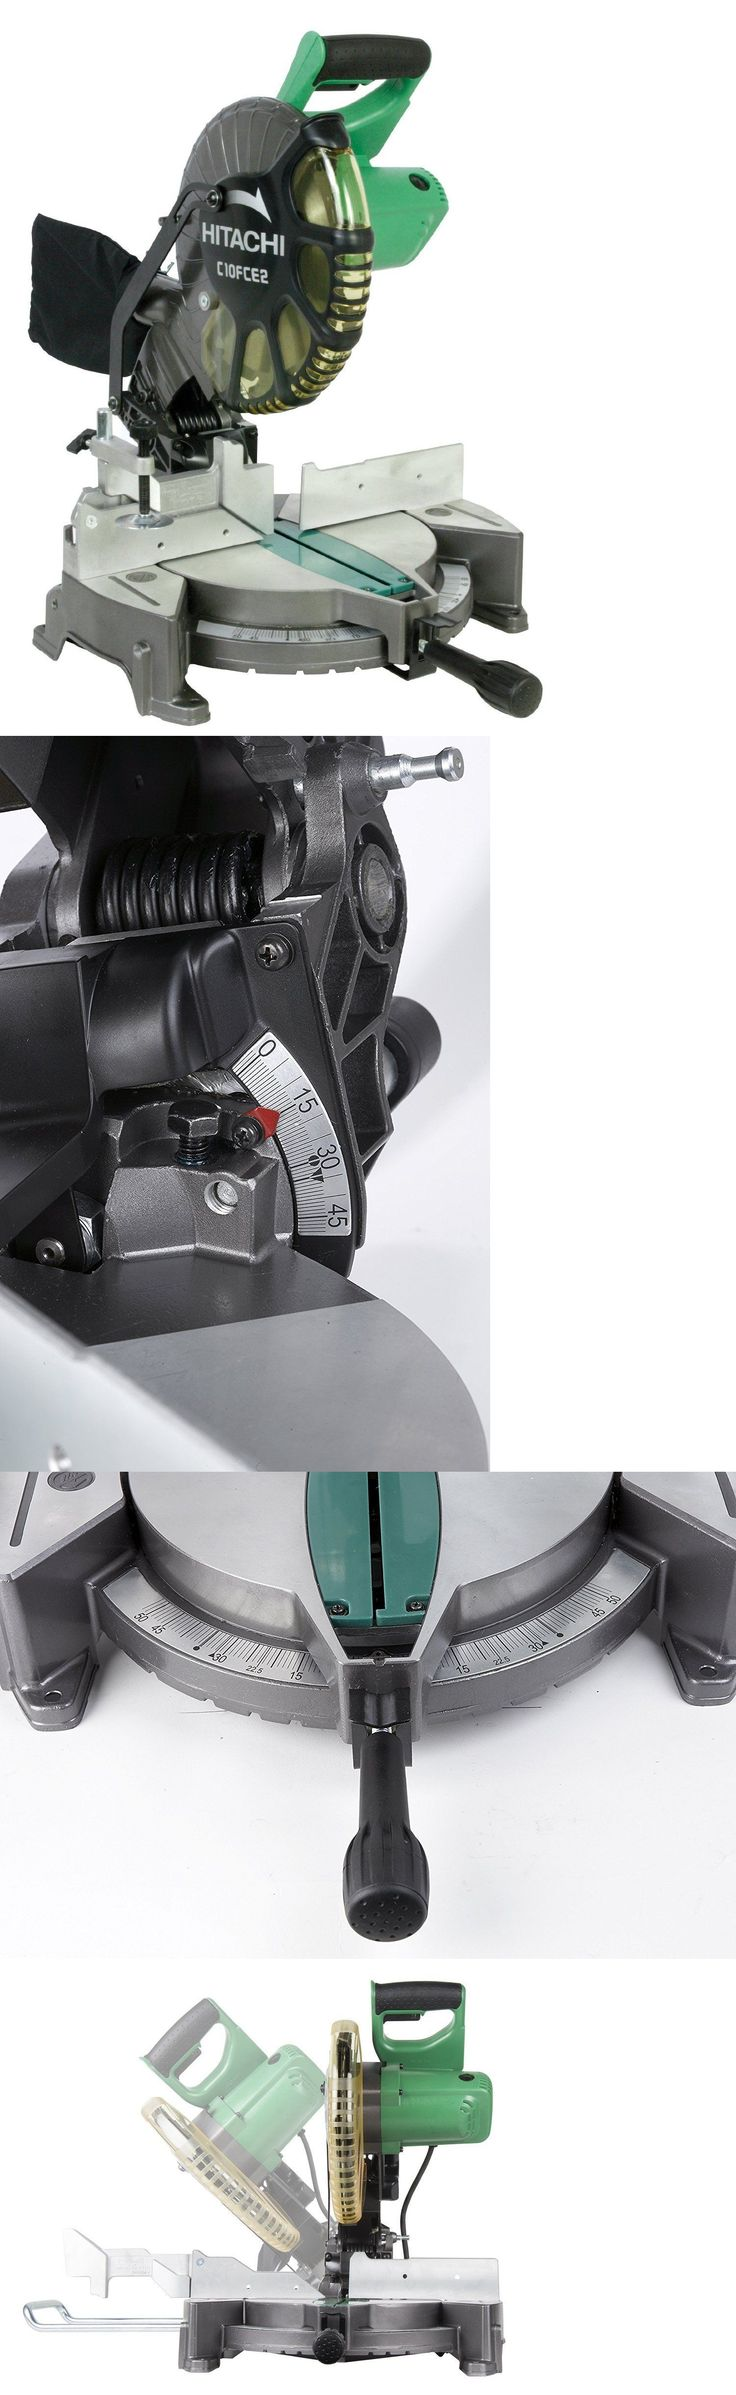 Miter and Chop Saws 20787: *New* Hitachi Miter Saw Compound Sliding Bevel Single 10 Inch 15 Amp Motor -> BUY IT NOW ONLY: $155 on eBay!